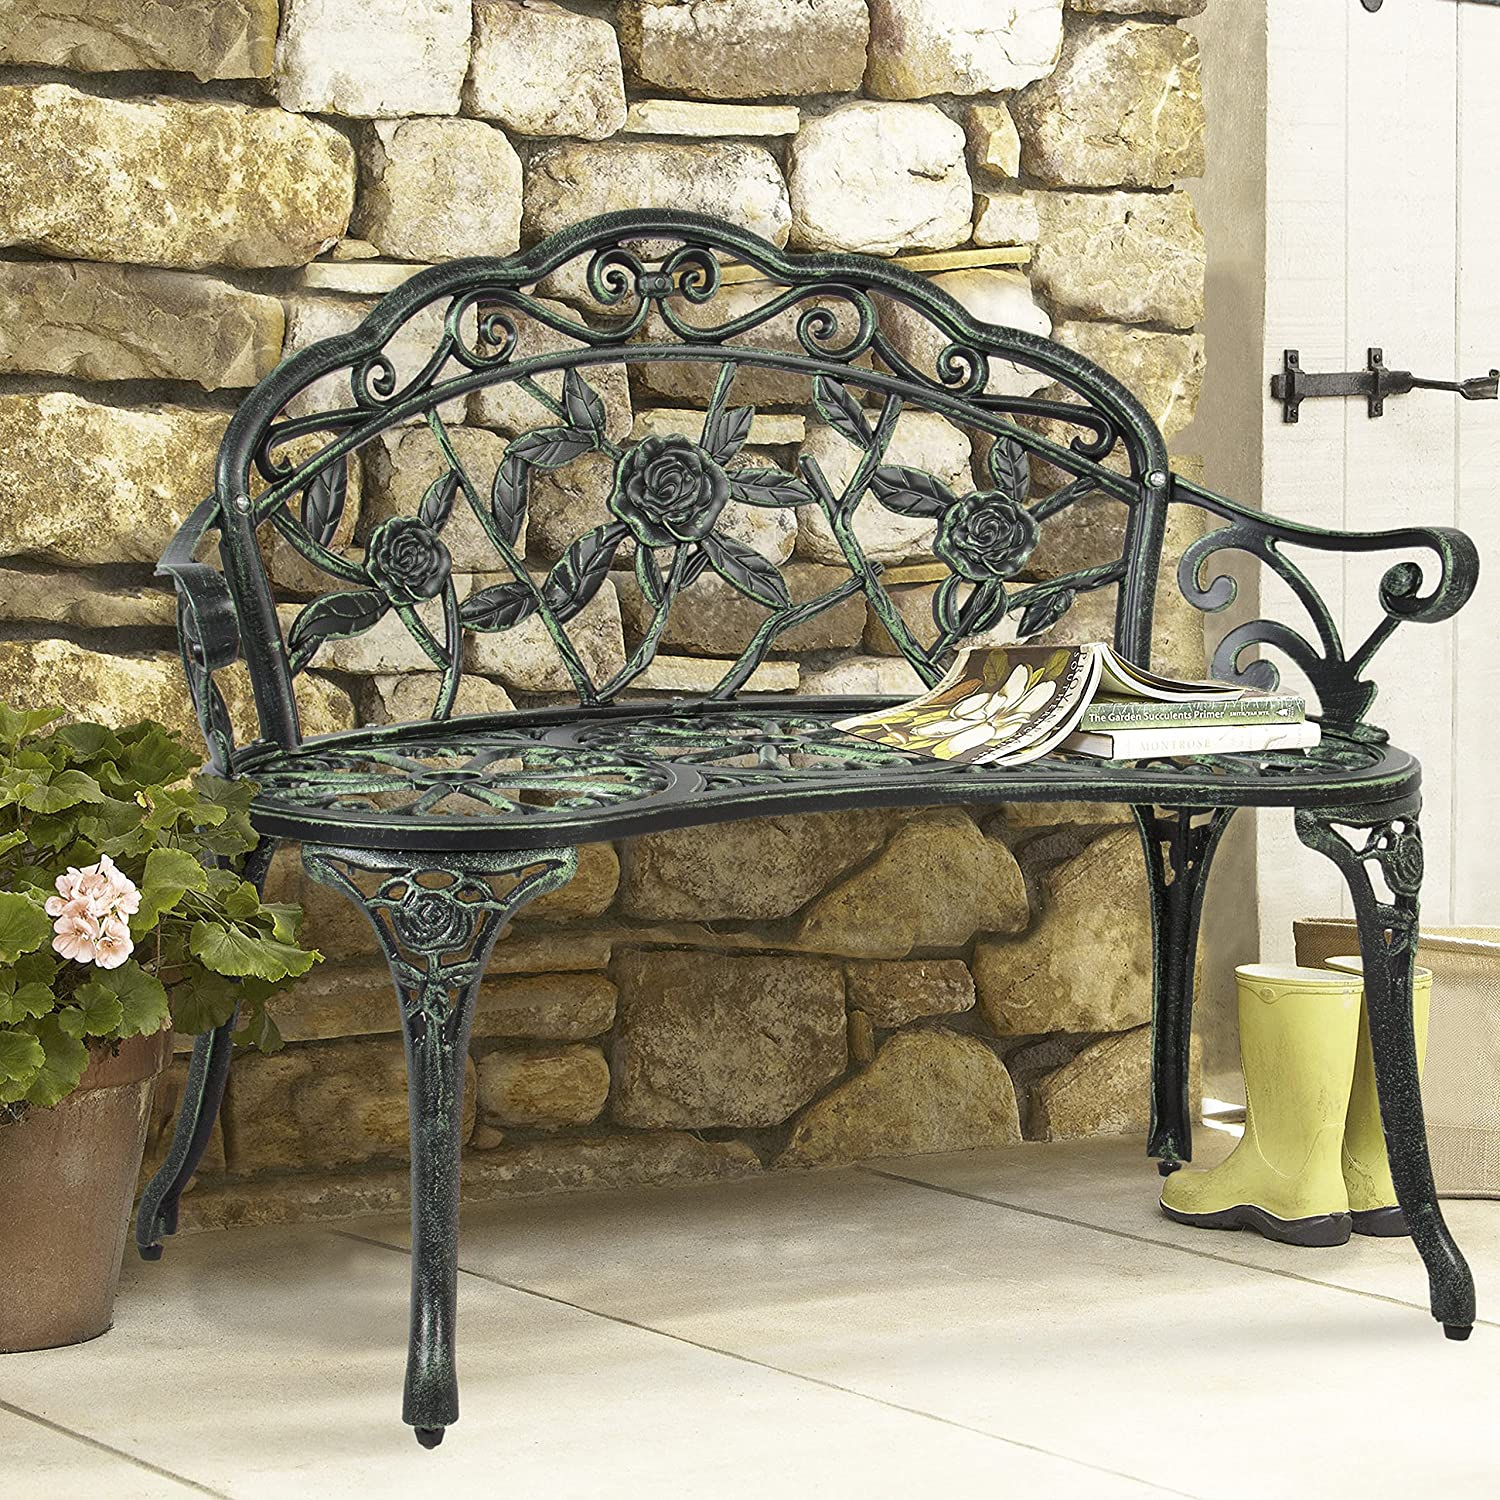 Amazon Best Choice Products BCP Outdoor Patio Garden Bench